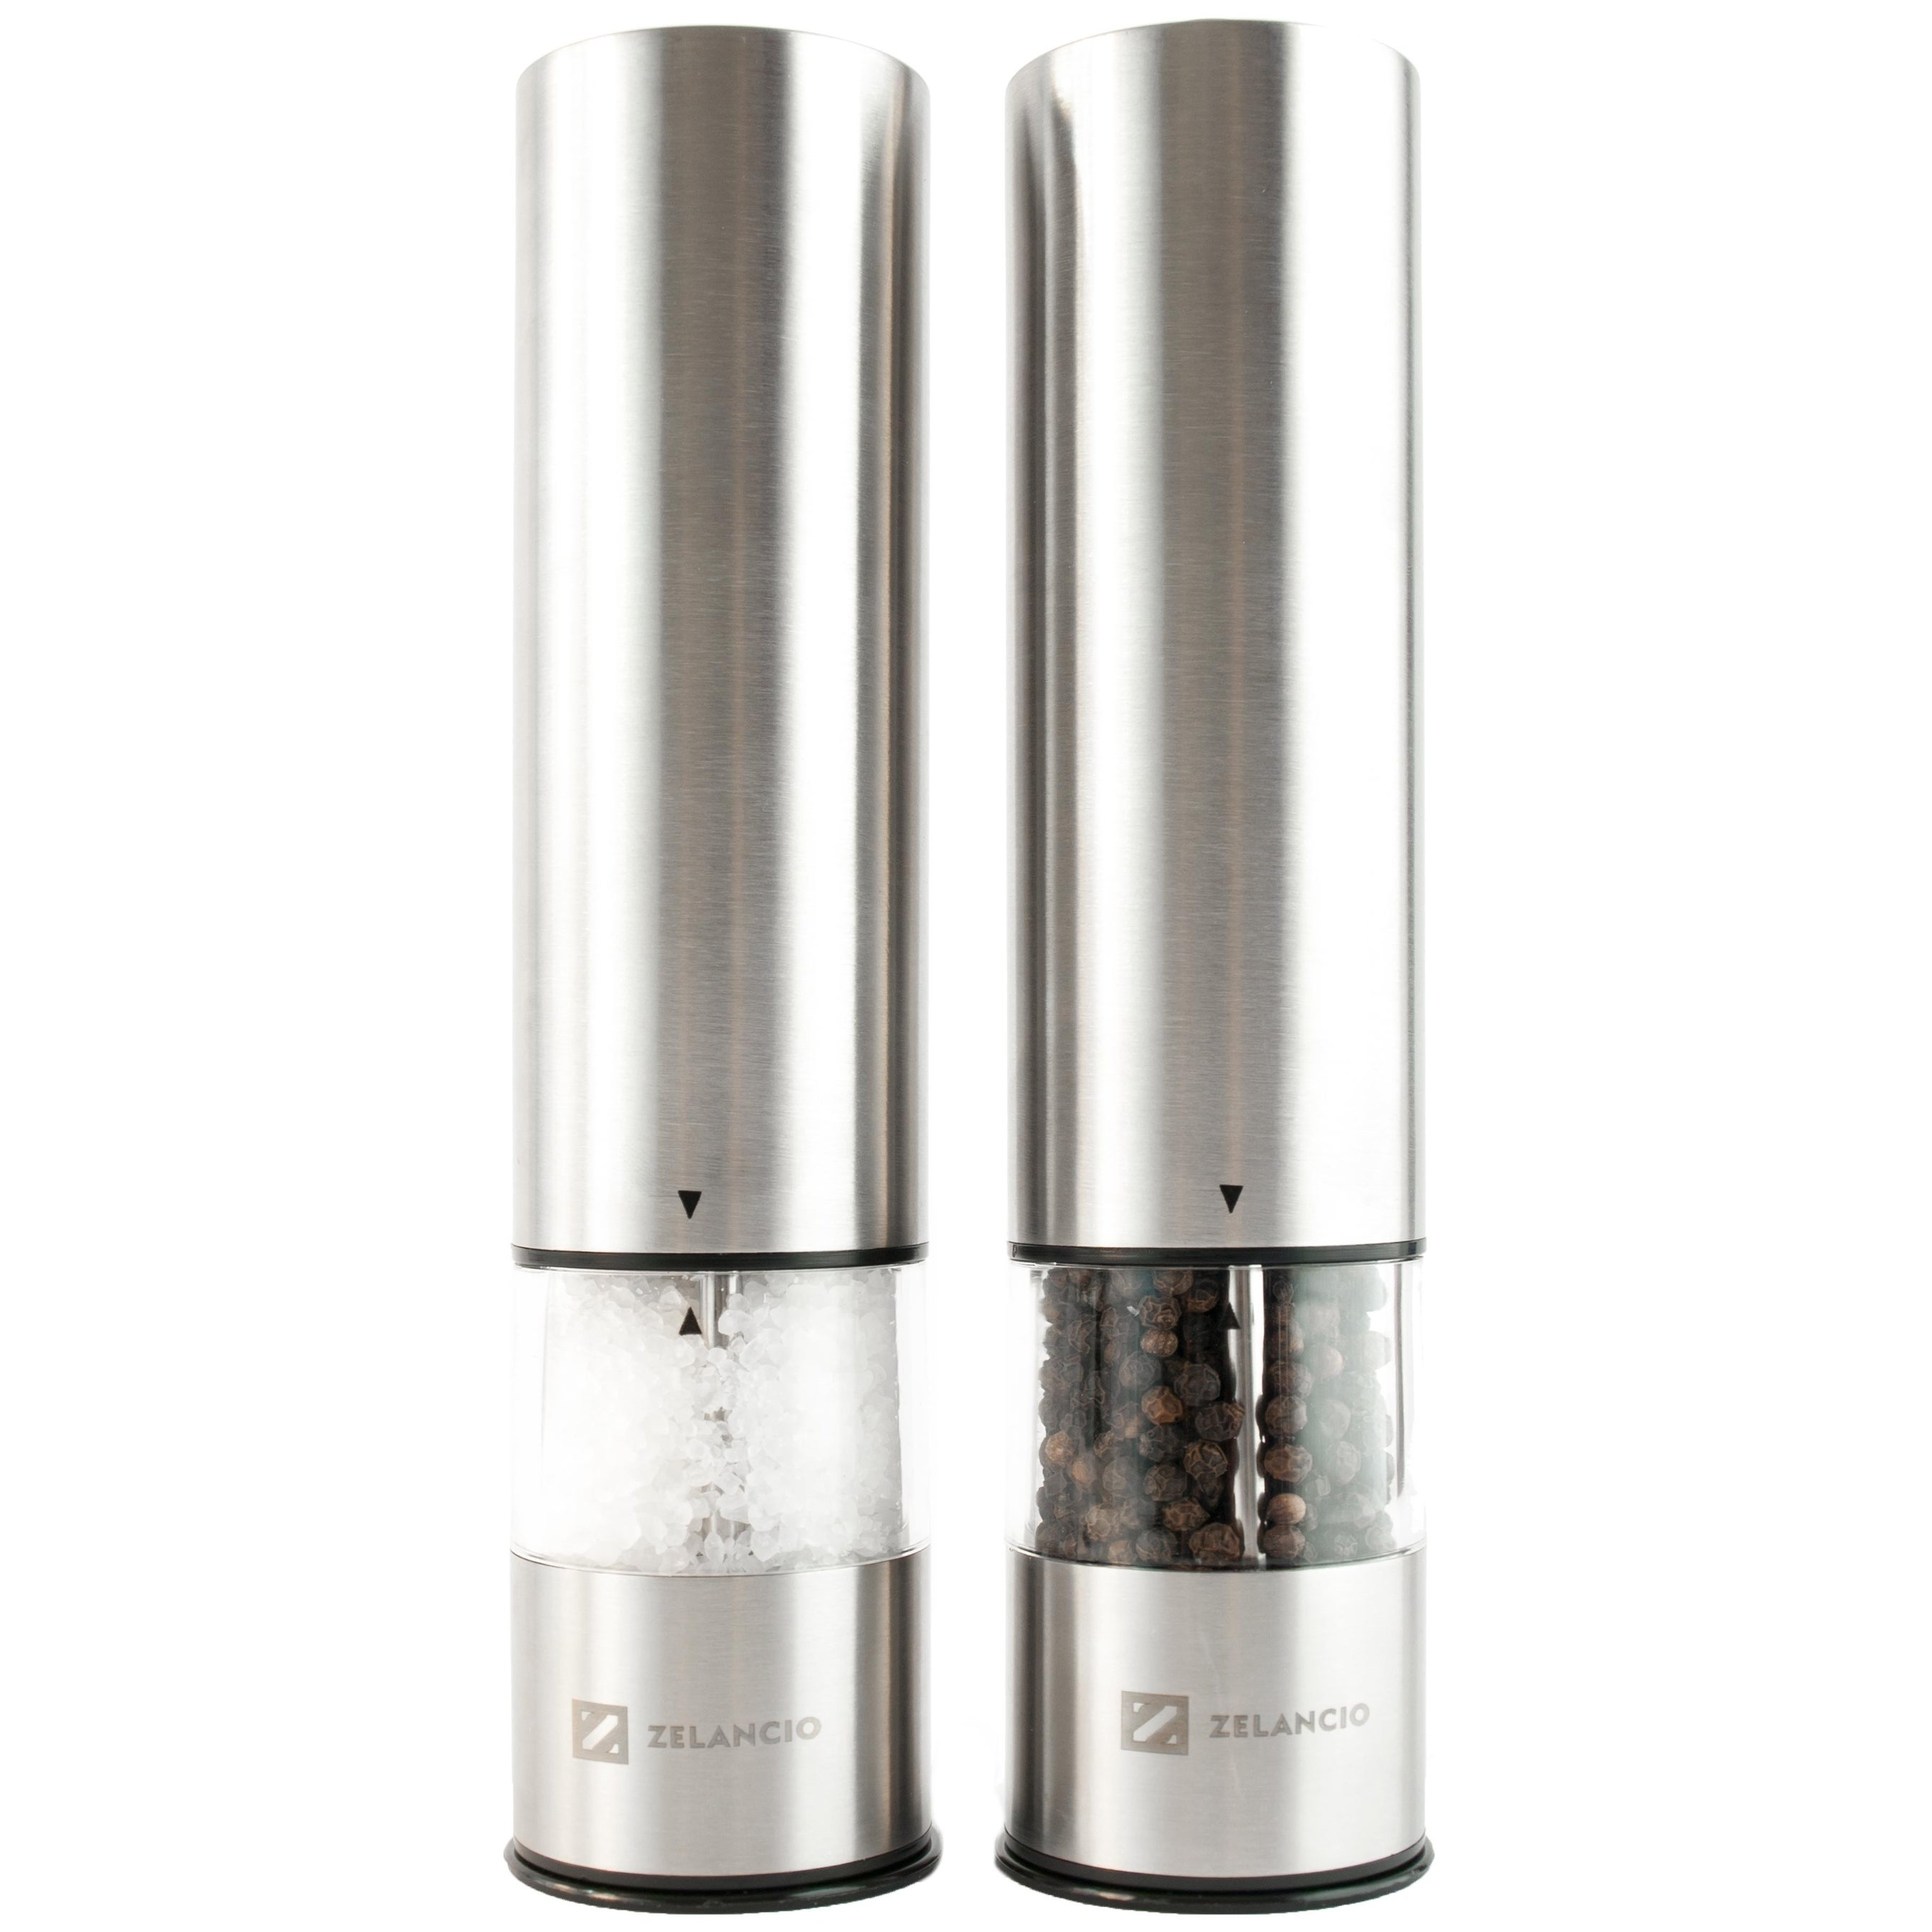 Zelancio Electric Salt and Pepper or Spice Grinder Set   Battery Powered  One Touch Grind Set of 2 Mills - Free Shipping On Orders Over $45 -  Overstock.com - ...